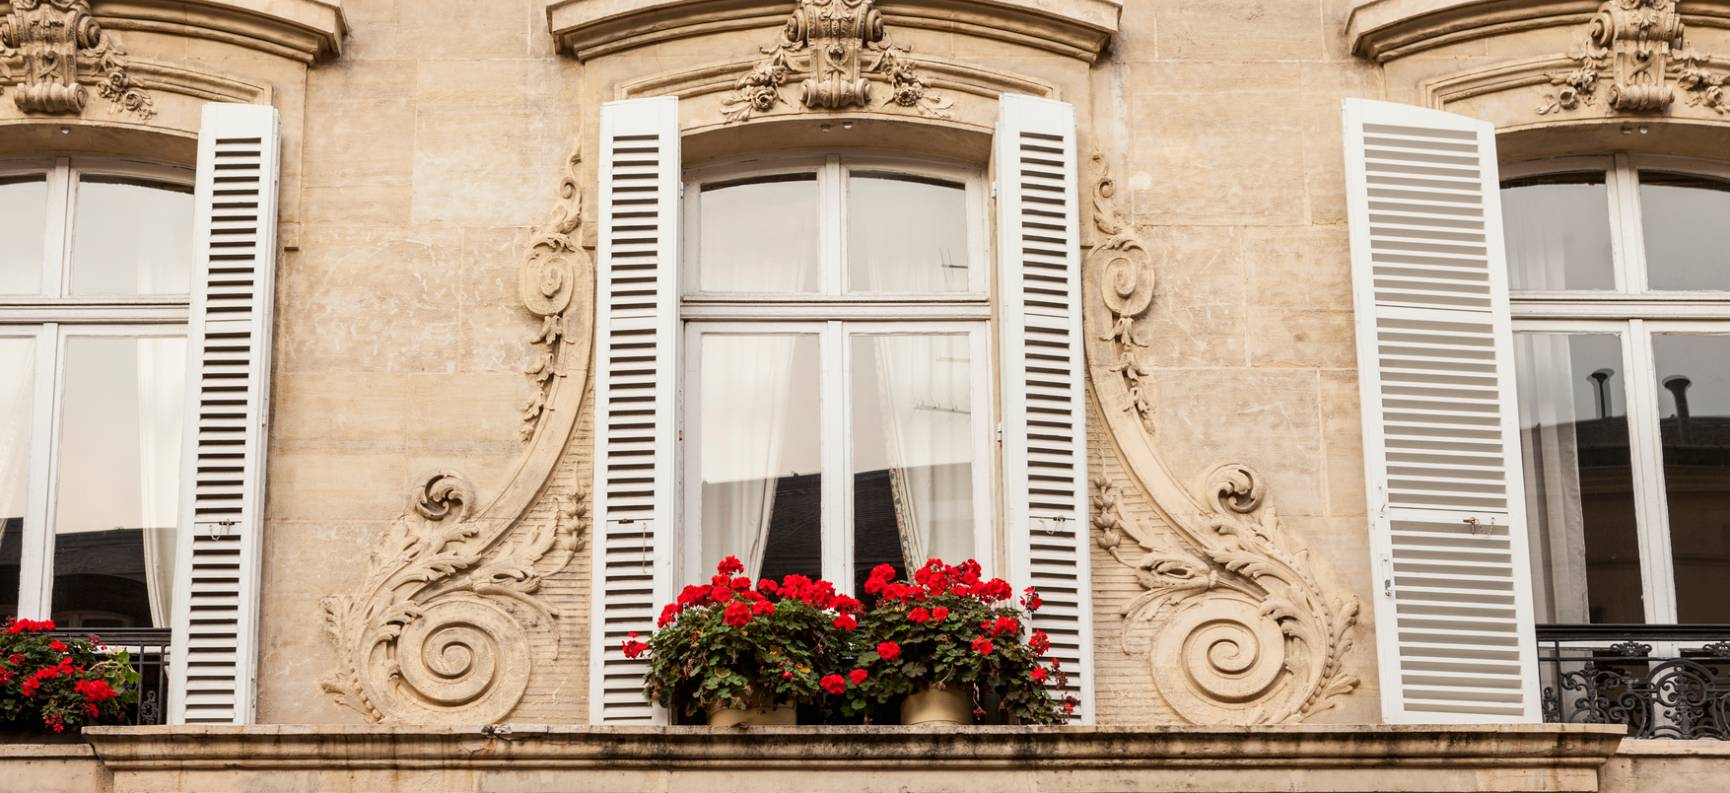 A Move to Paris Brought an Unexpected Refuge